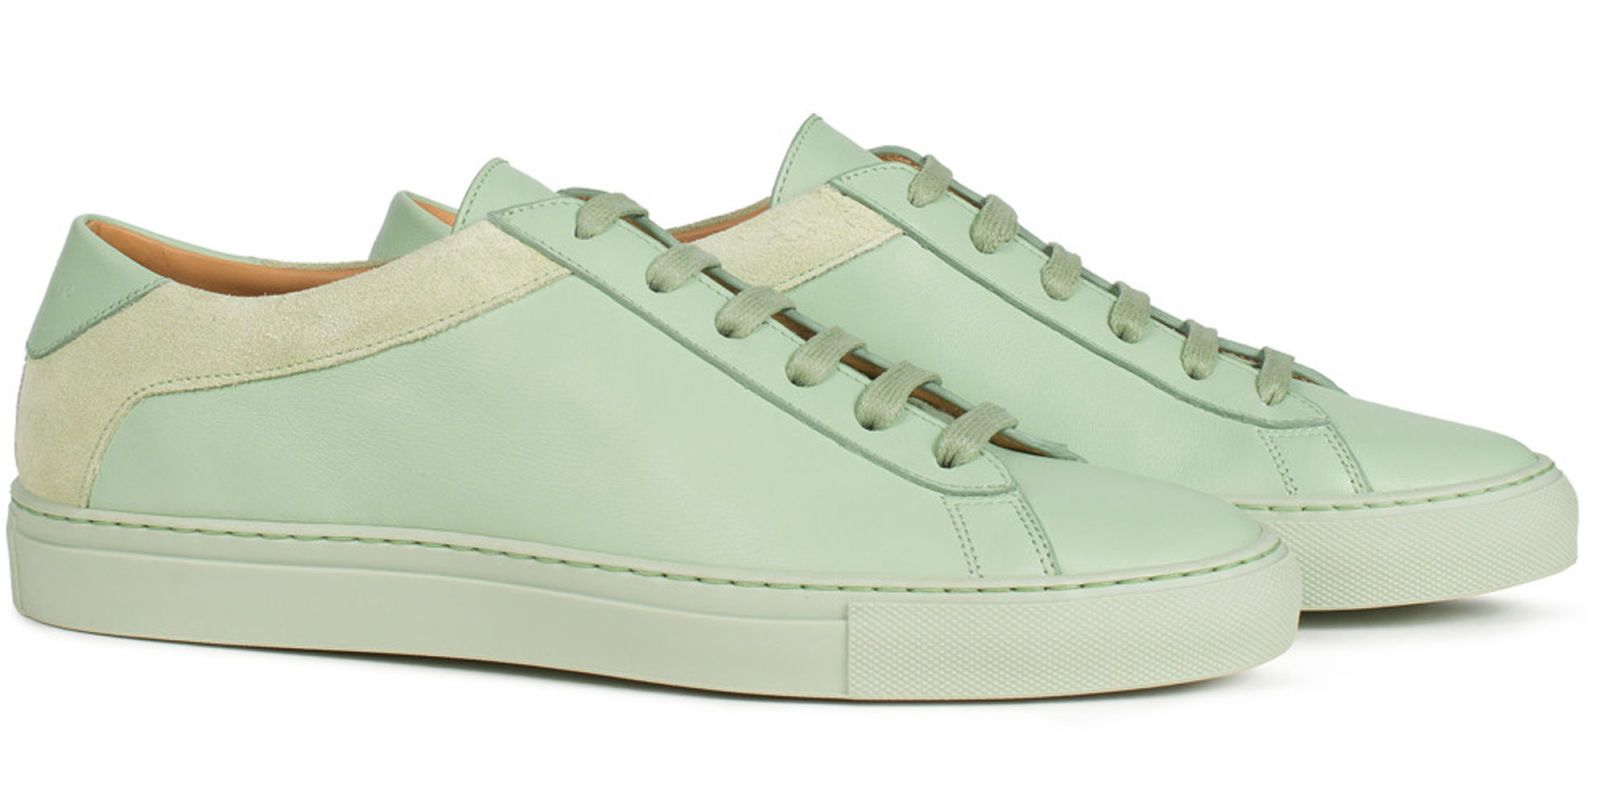 Why You Should Consider Pastel Sneakers This Fall